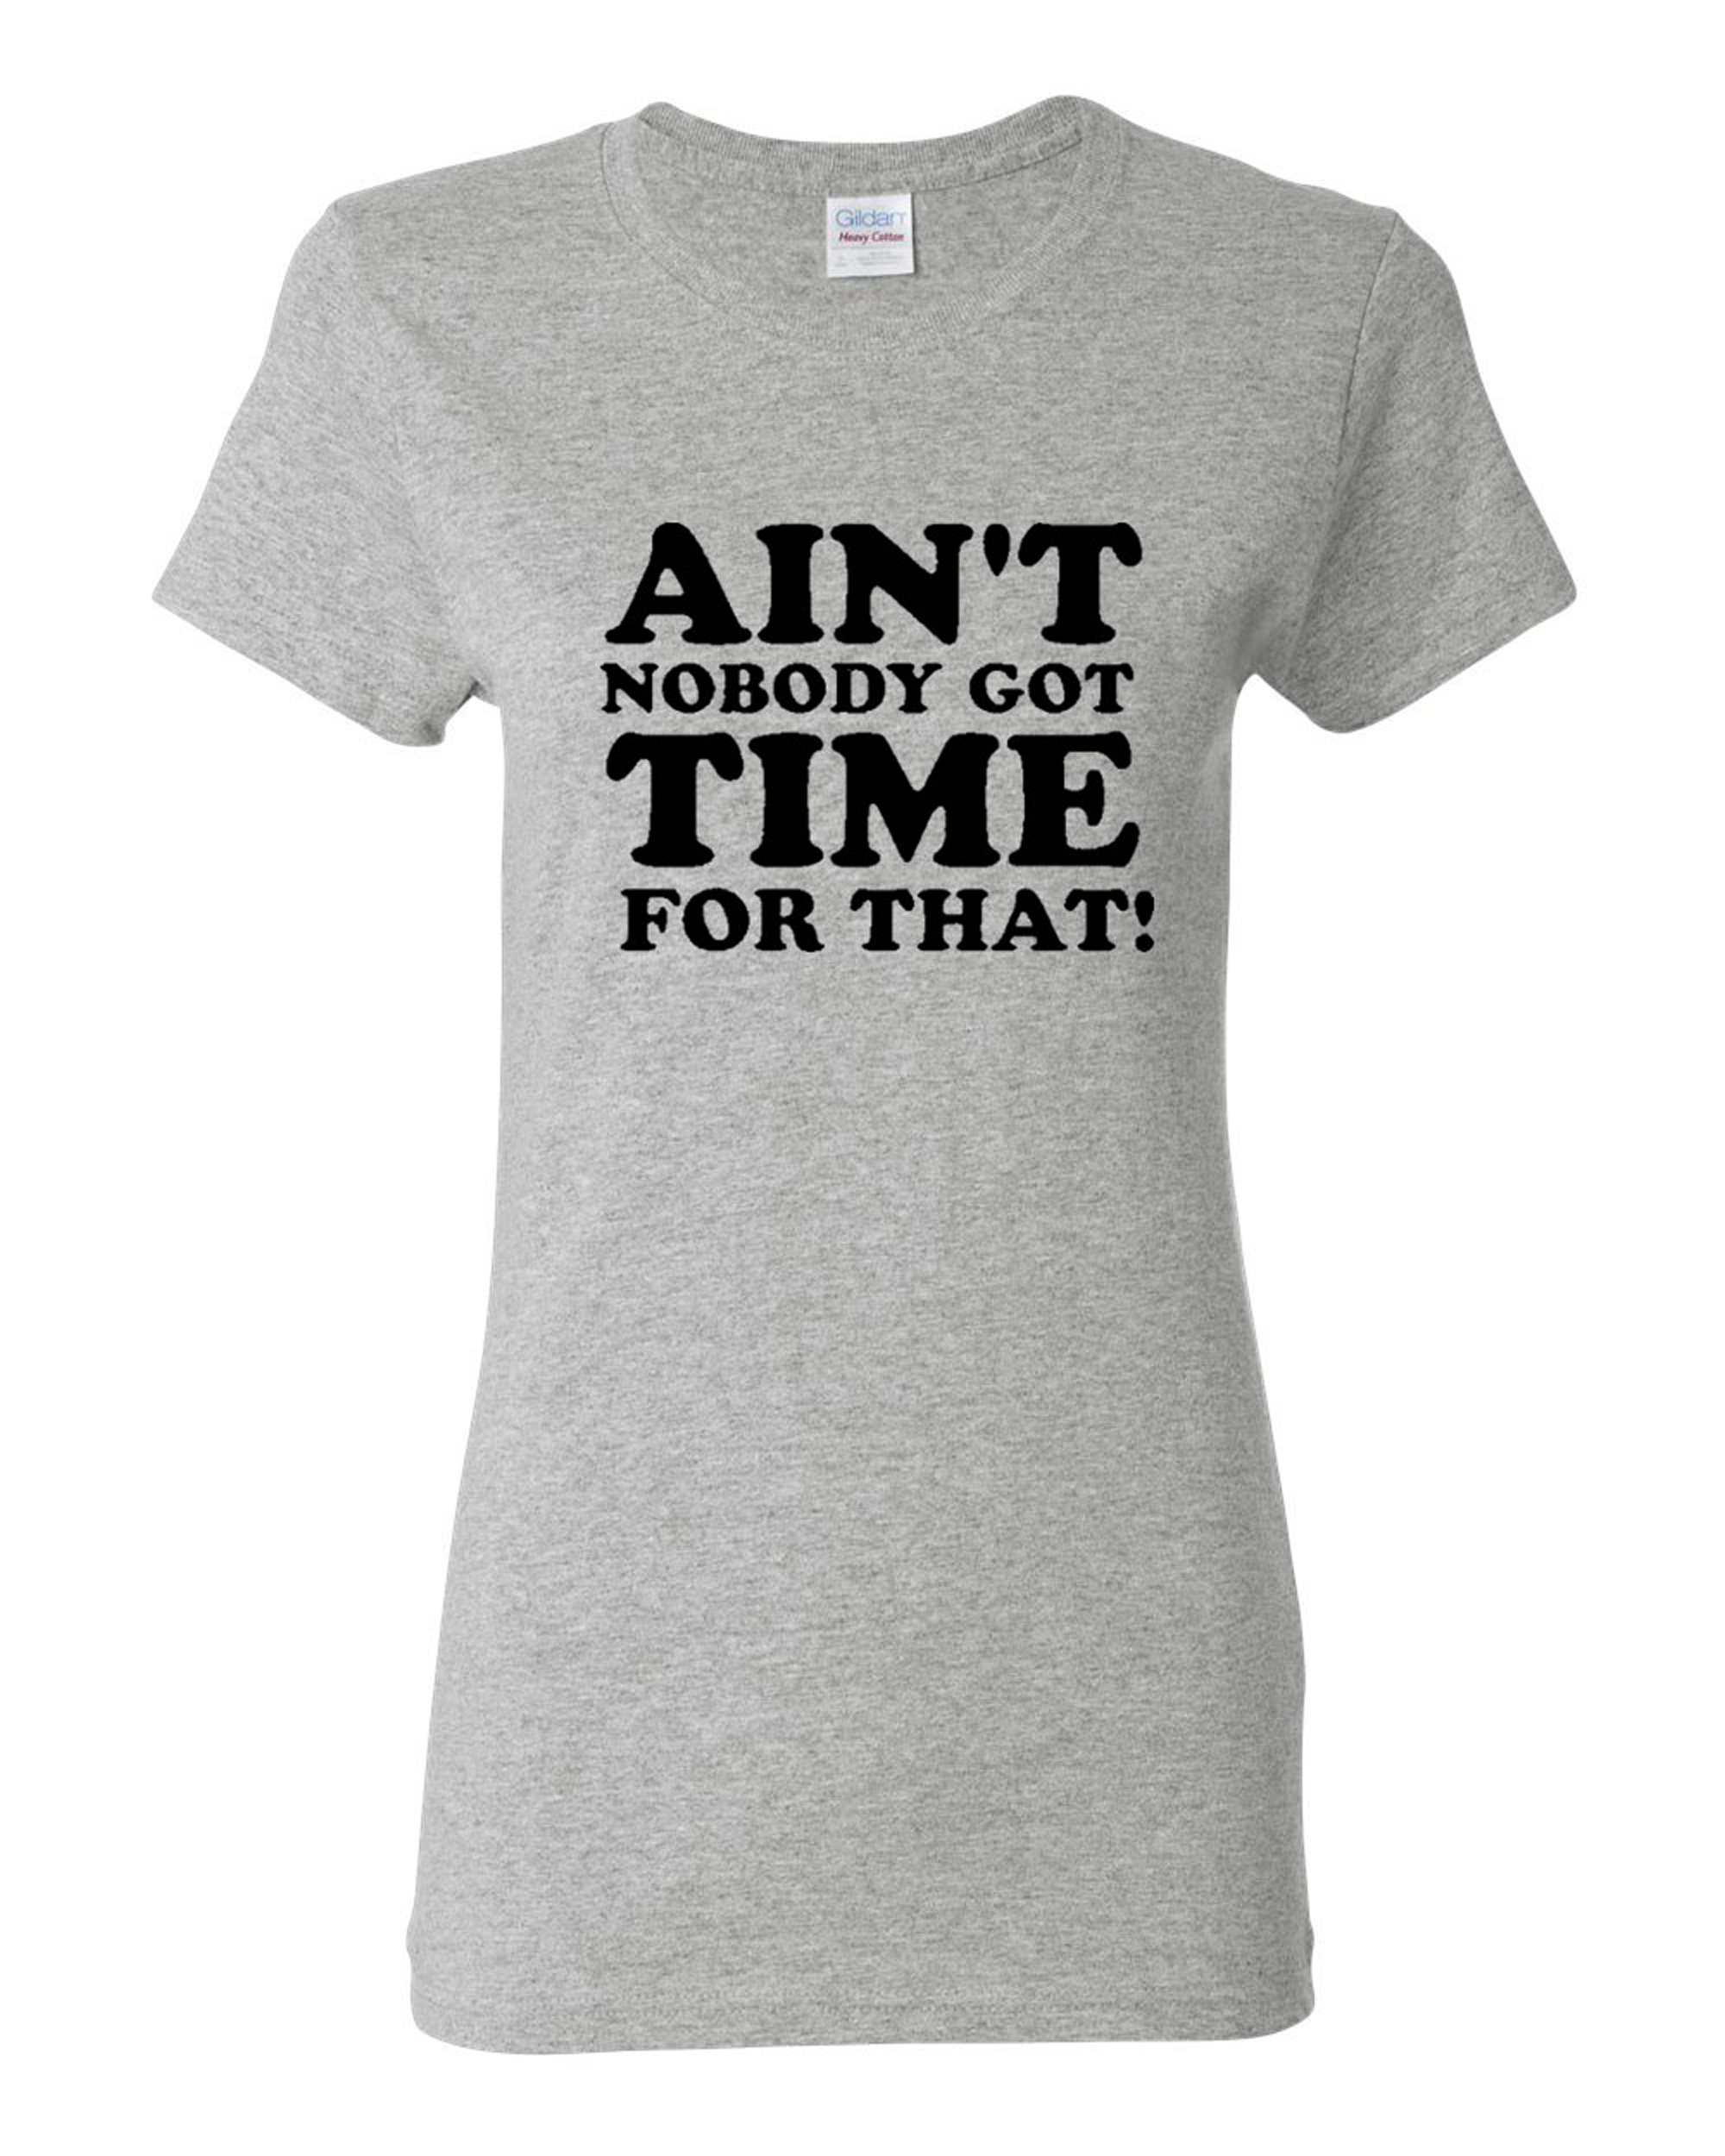 Ladies Ain't Nobody Got Time For That T-Shirt Tee